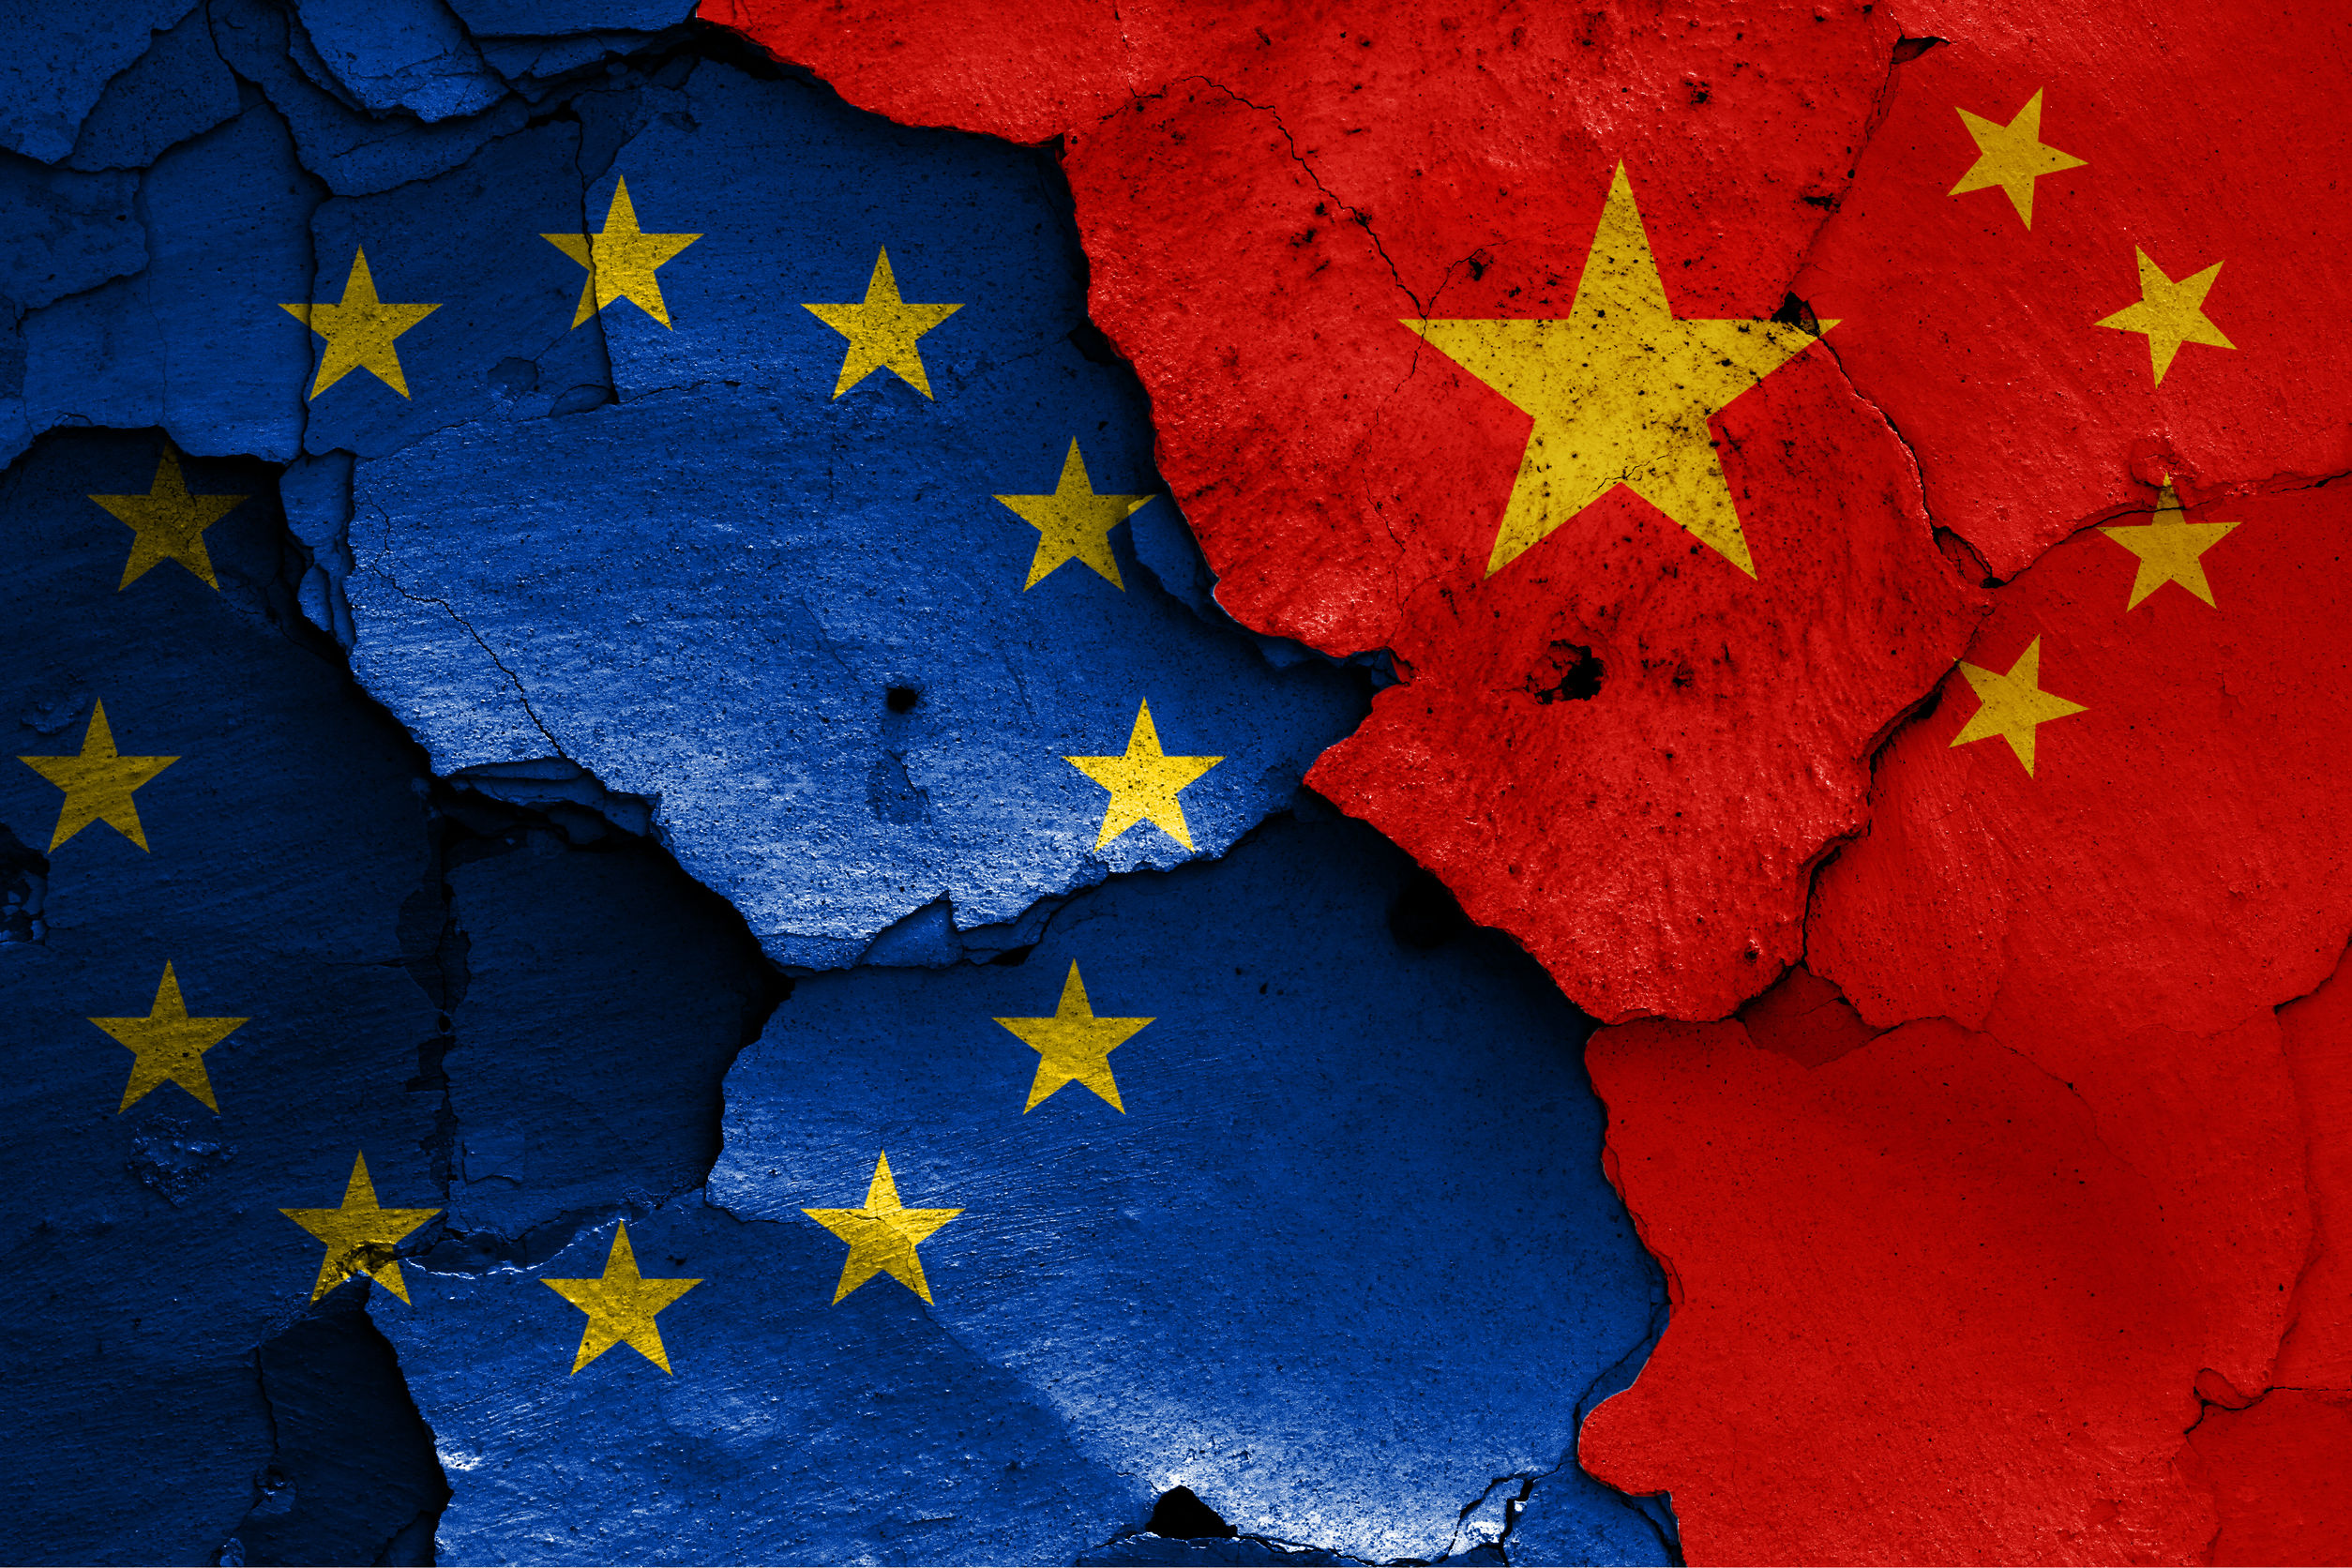 Europe Fights Back to Curb China's Dominance